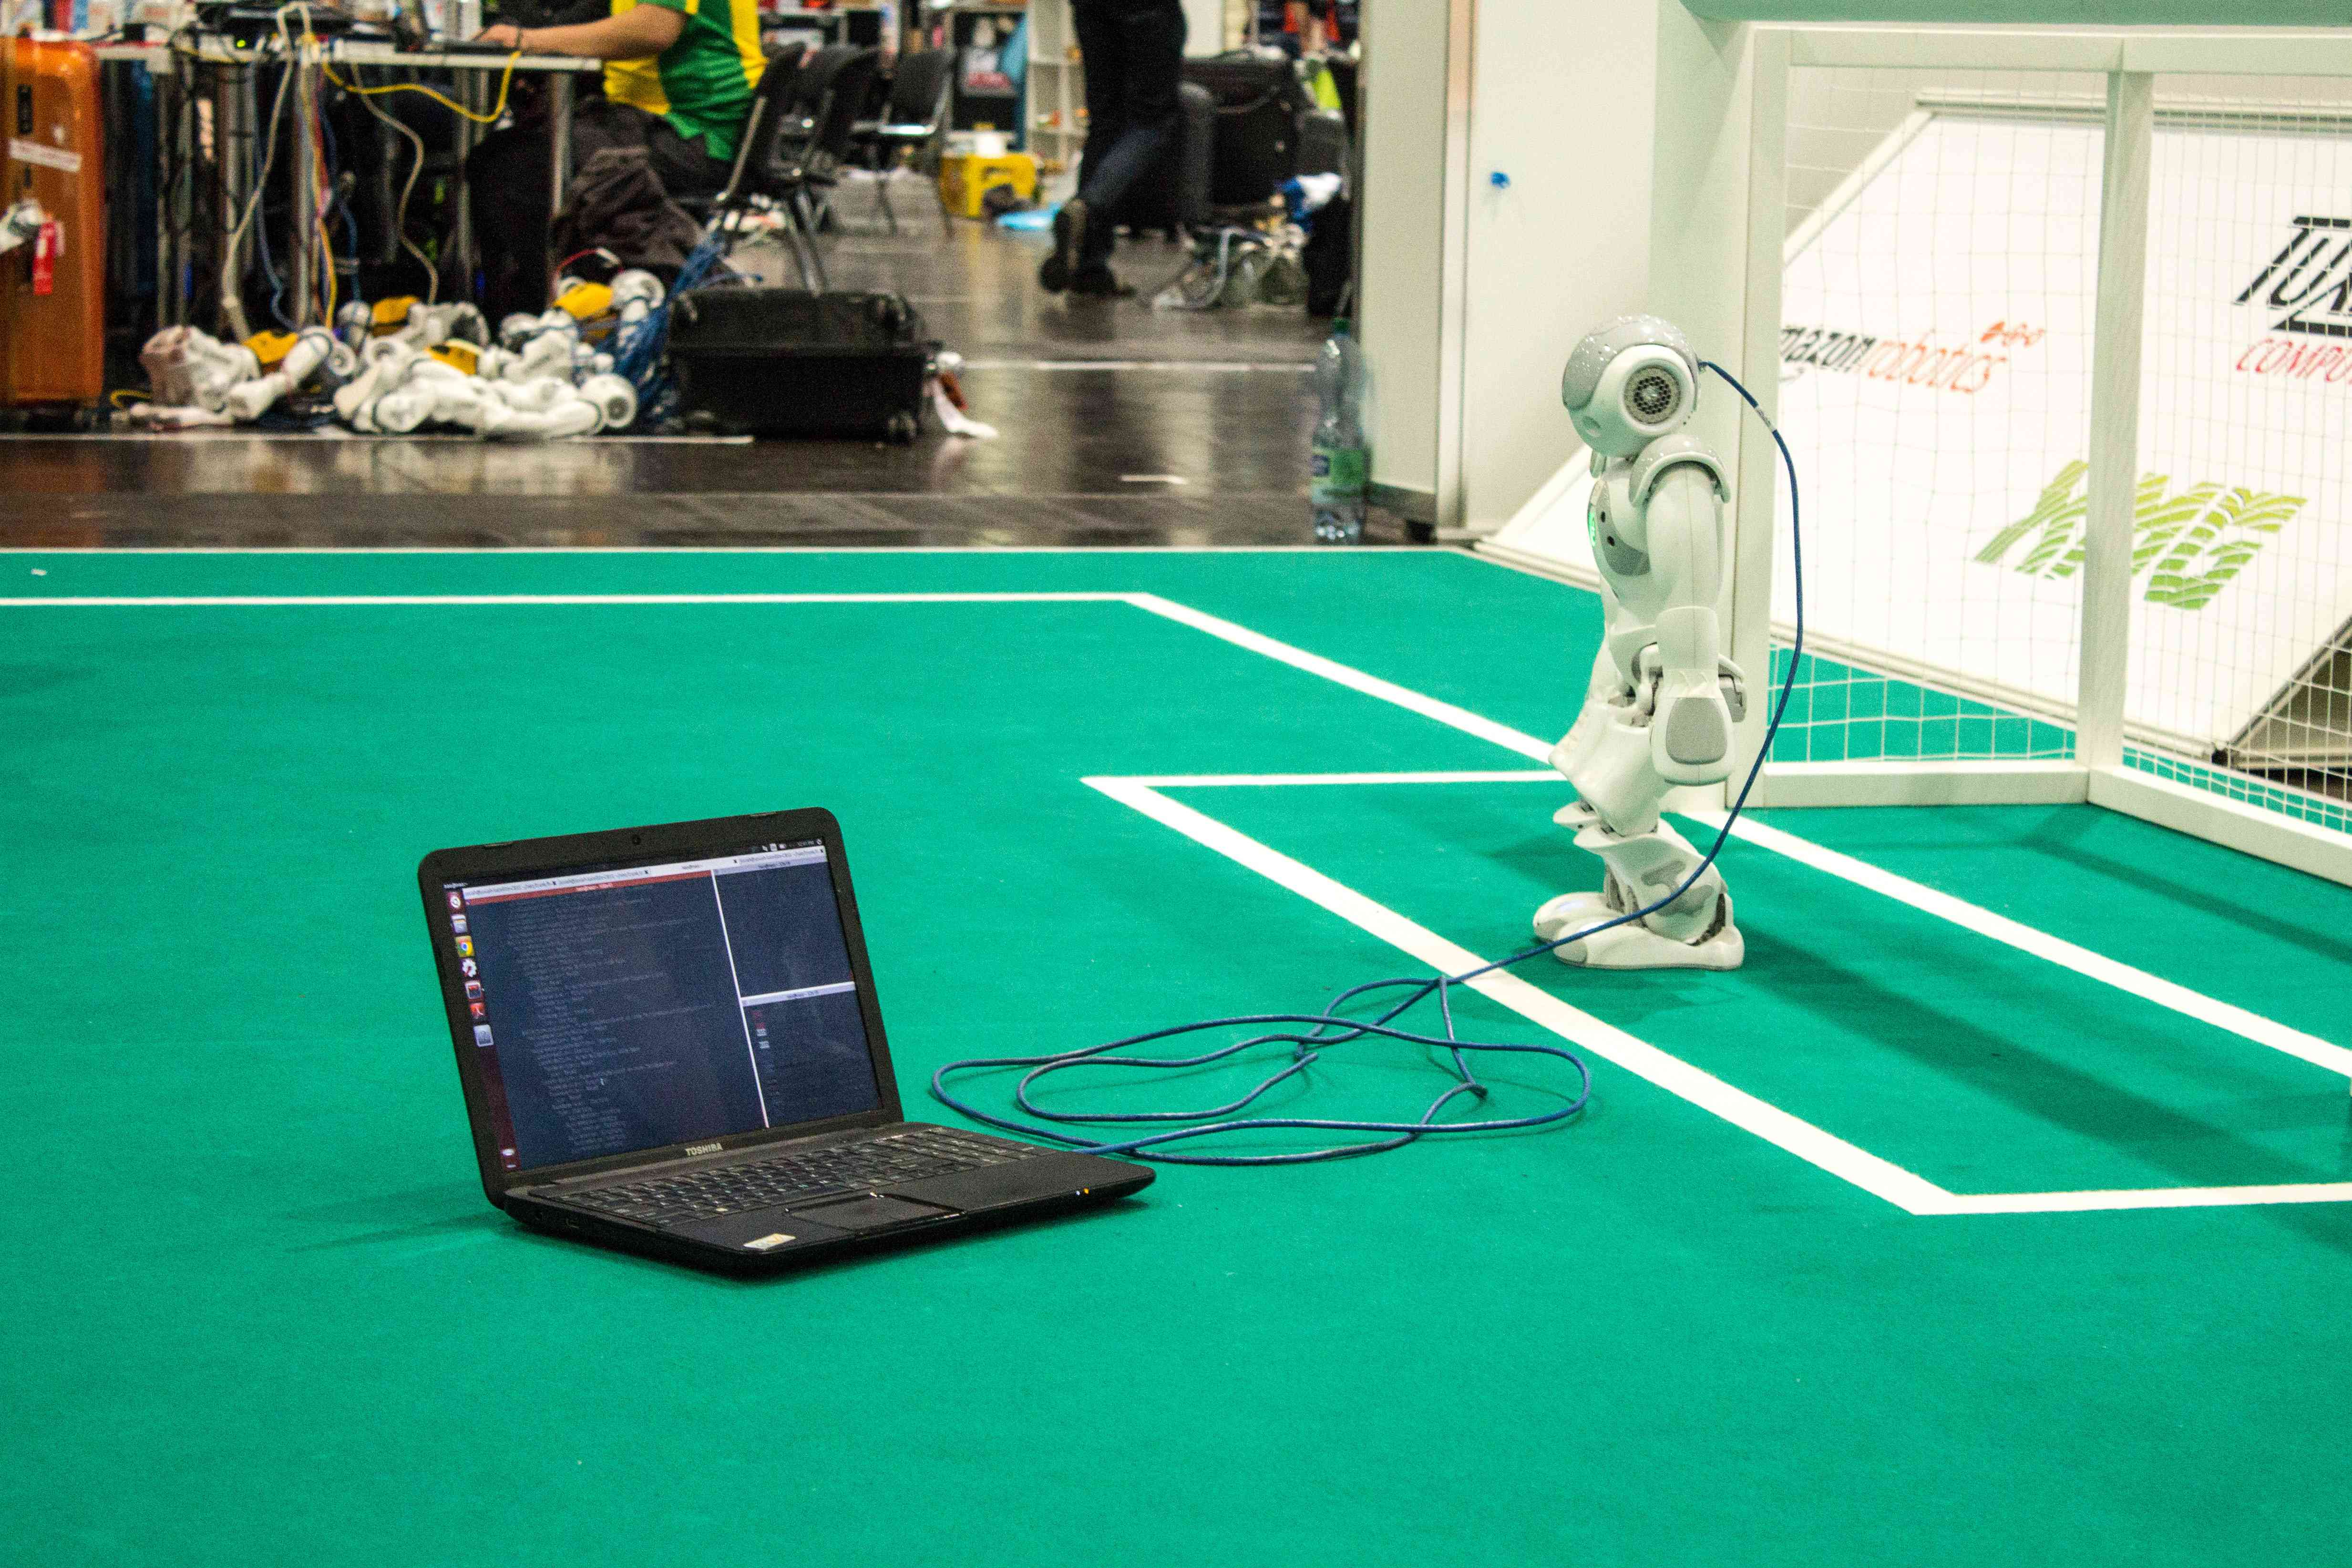 A laoptop computer with code on the screen connected by a wire to a robot.